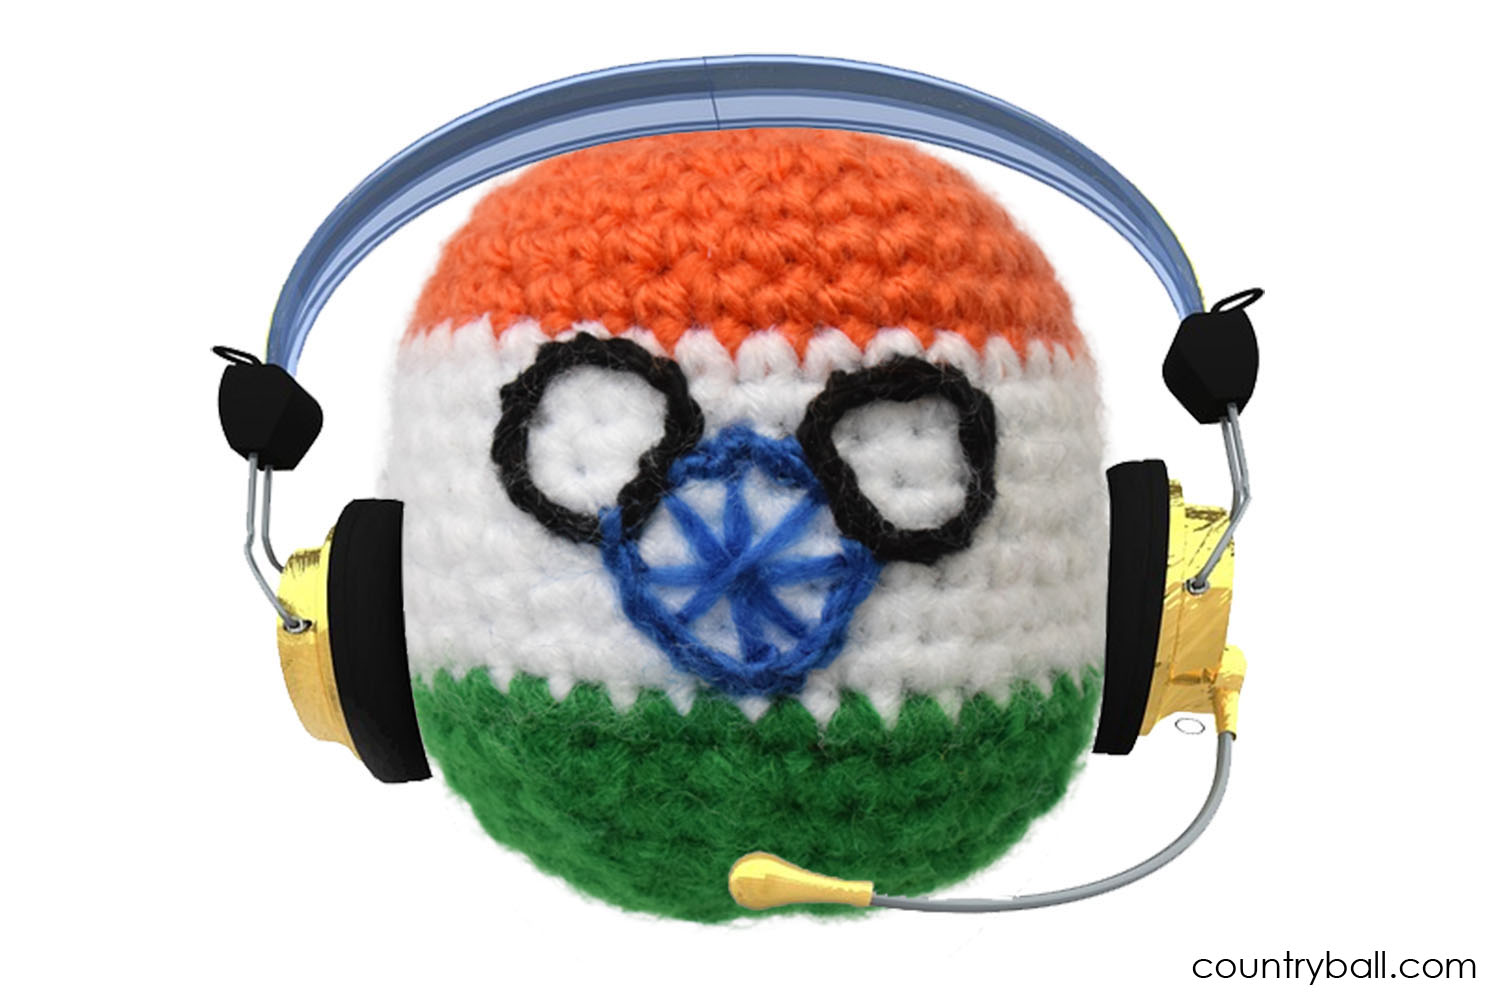 Indiaball working in a Call Center